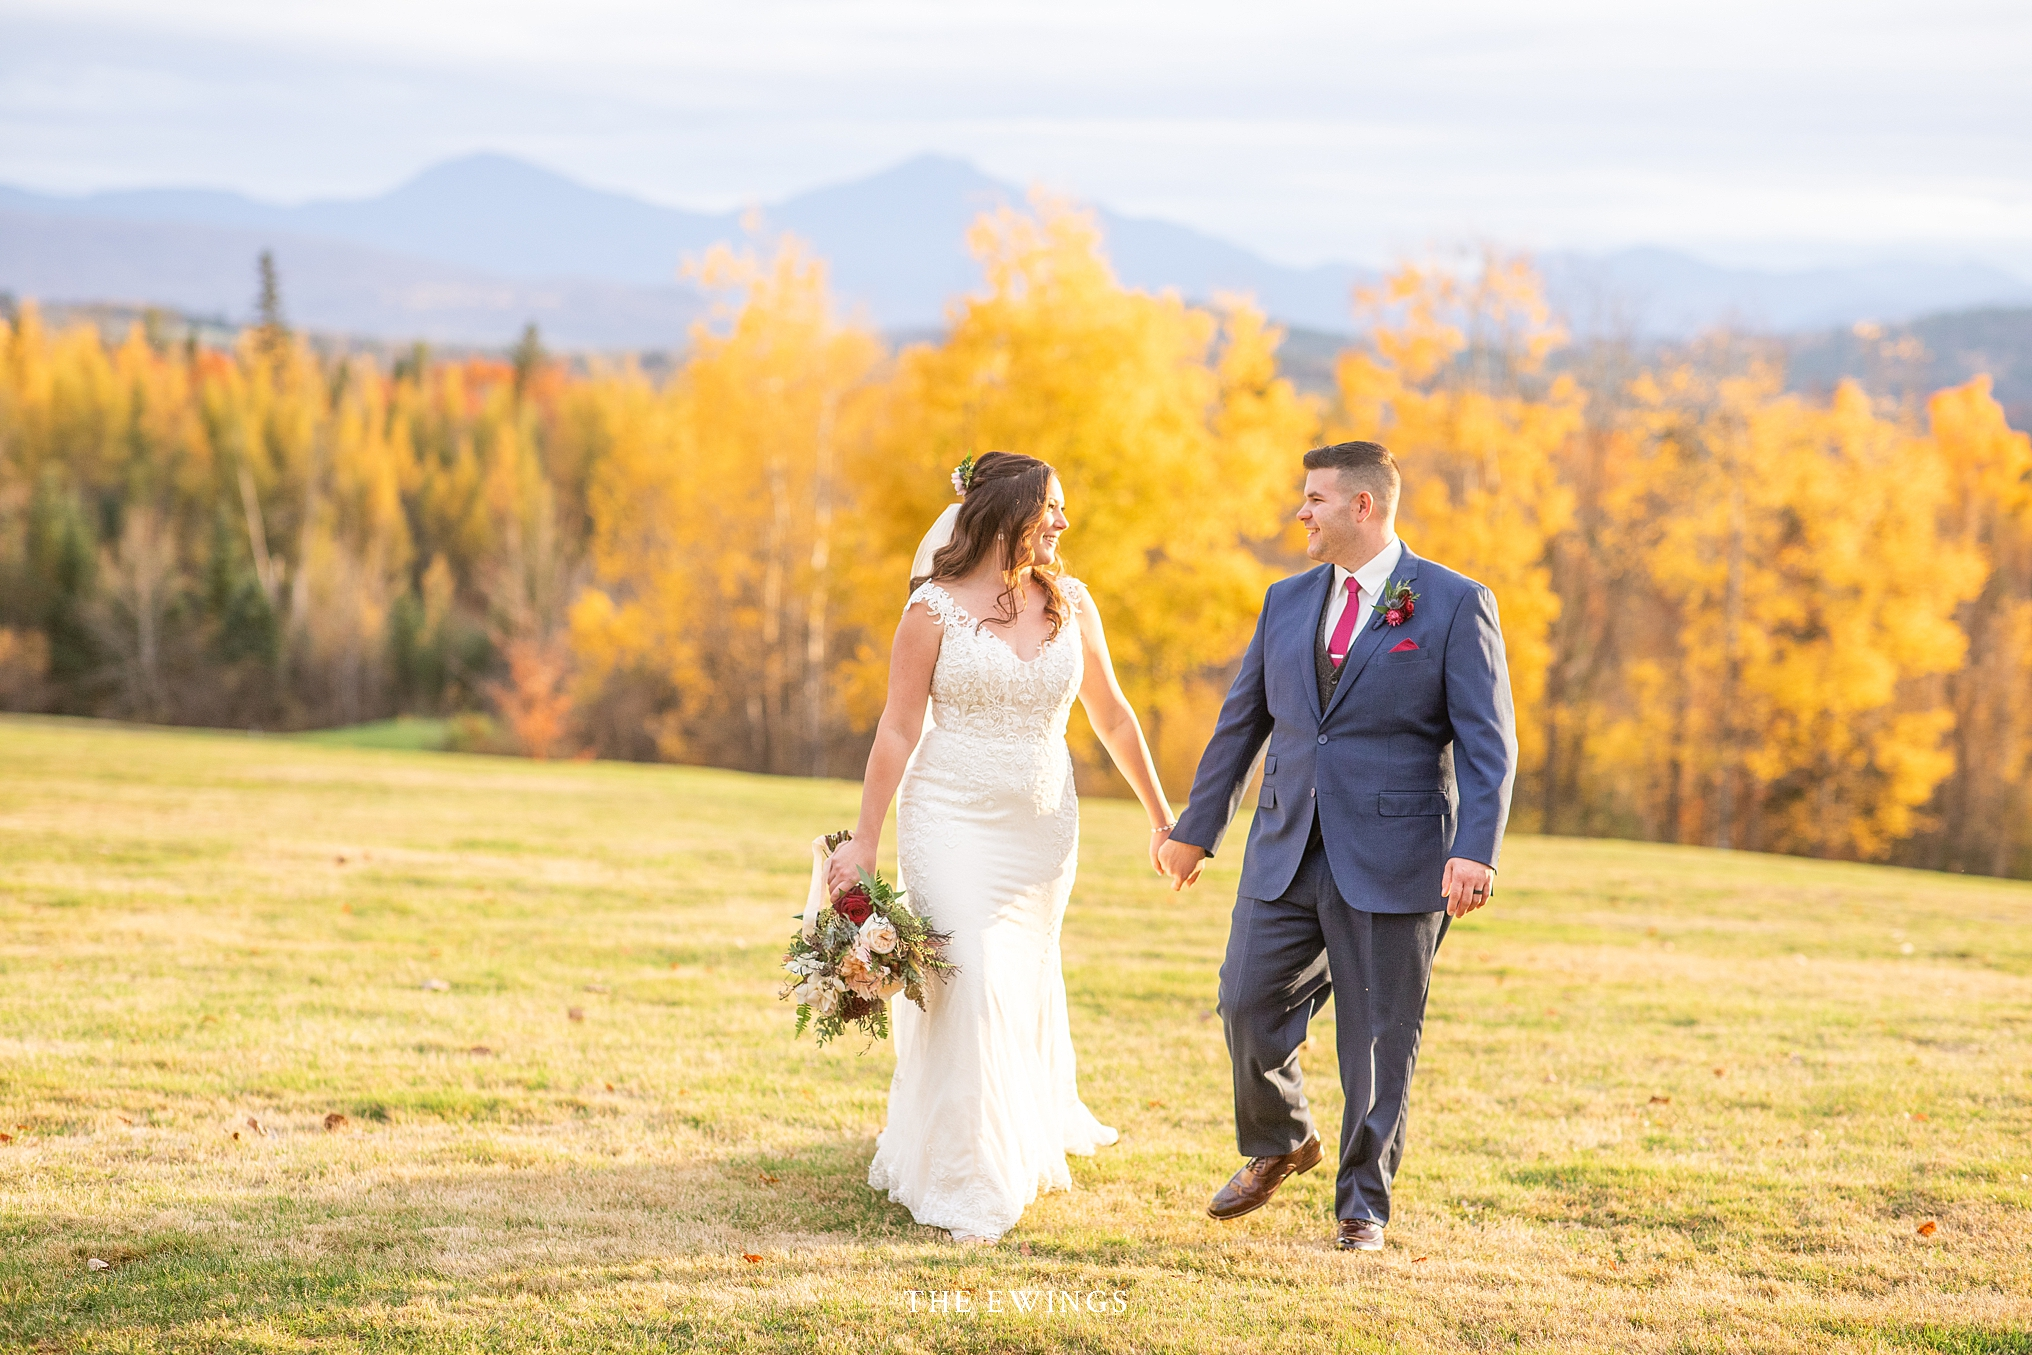 These two eloped at the Mountainview Grand in the white mountains of New Hampshire, with views of Mount Washington.